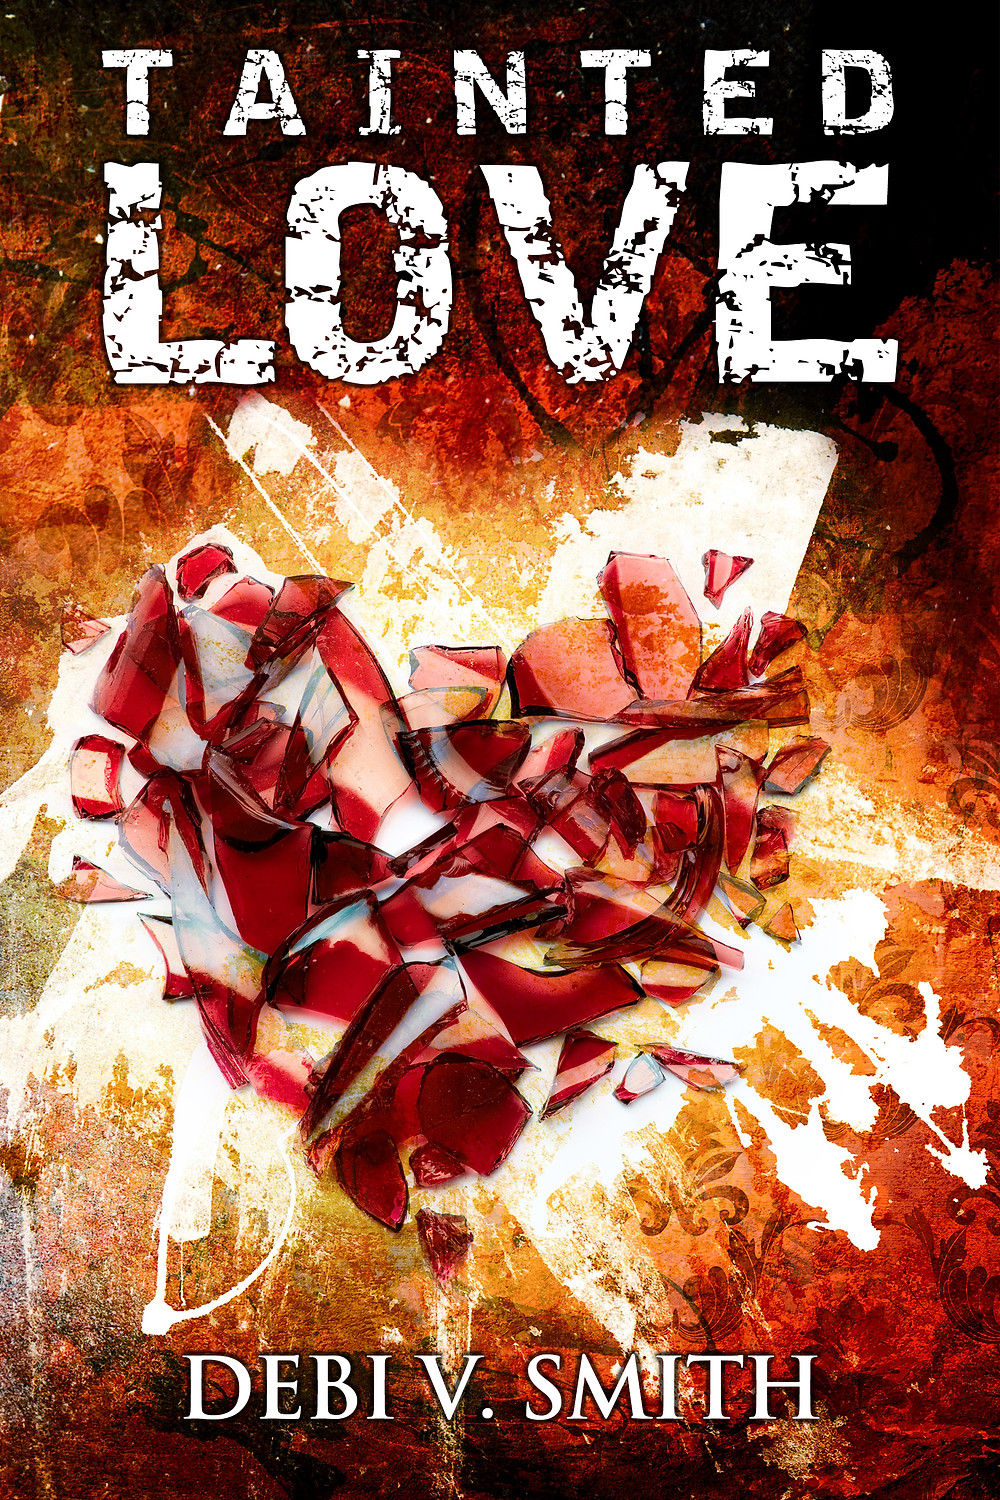 Image of broken brown glass arranged into a heart shape on worn wallpaper with text TAINTED LOVE in white above the heart and text DEBI V. SMITH below the heart